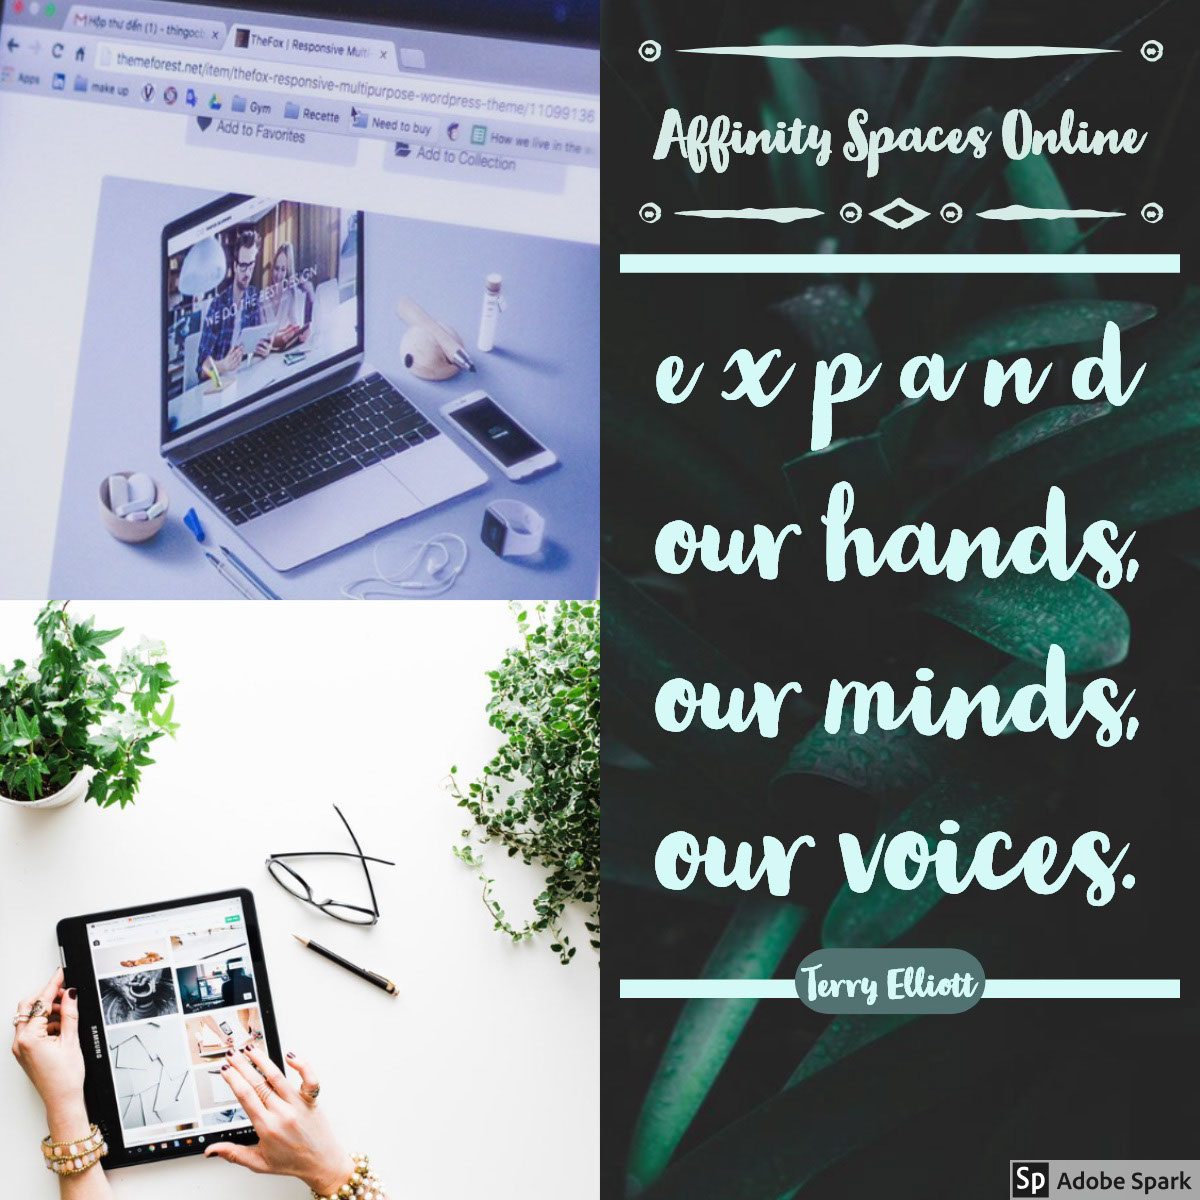 e x p a n d <BR>our hands, <BR>our minds, our voices. e x p a n d <BR>our hands, <BR>our minds,  our voices.<P>Affinity Spaces Online <P>Terry Elliott